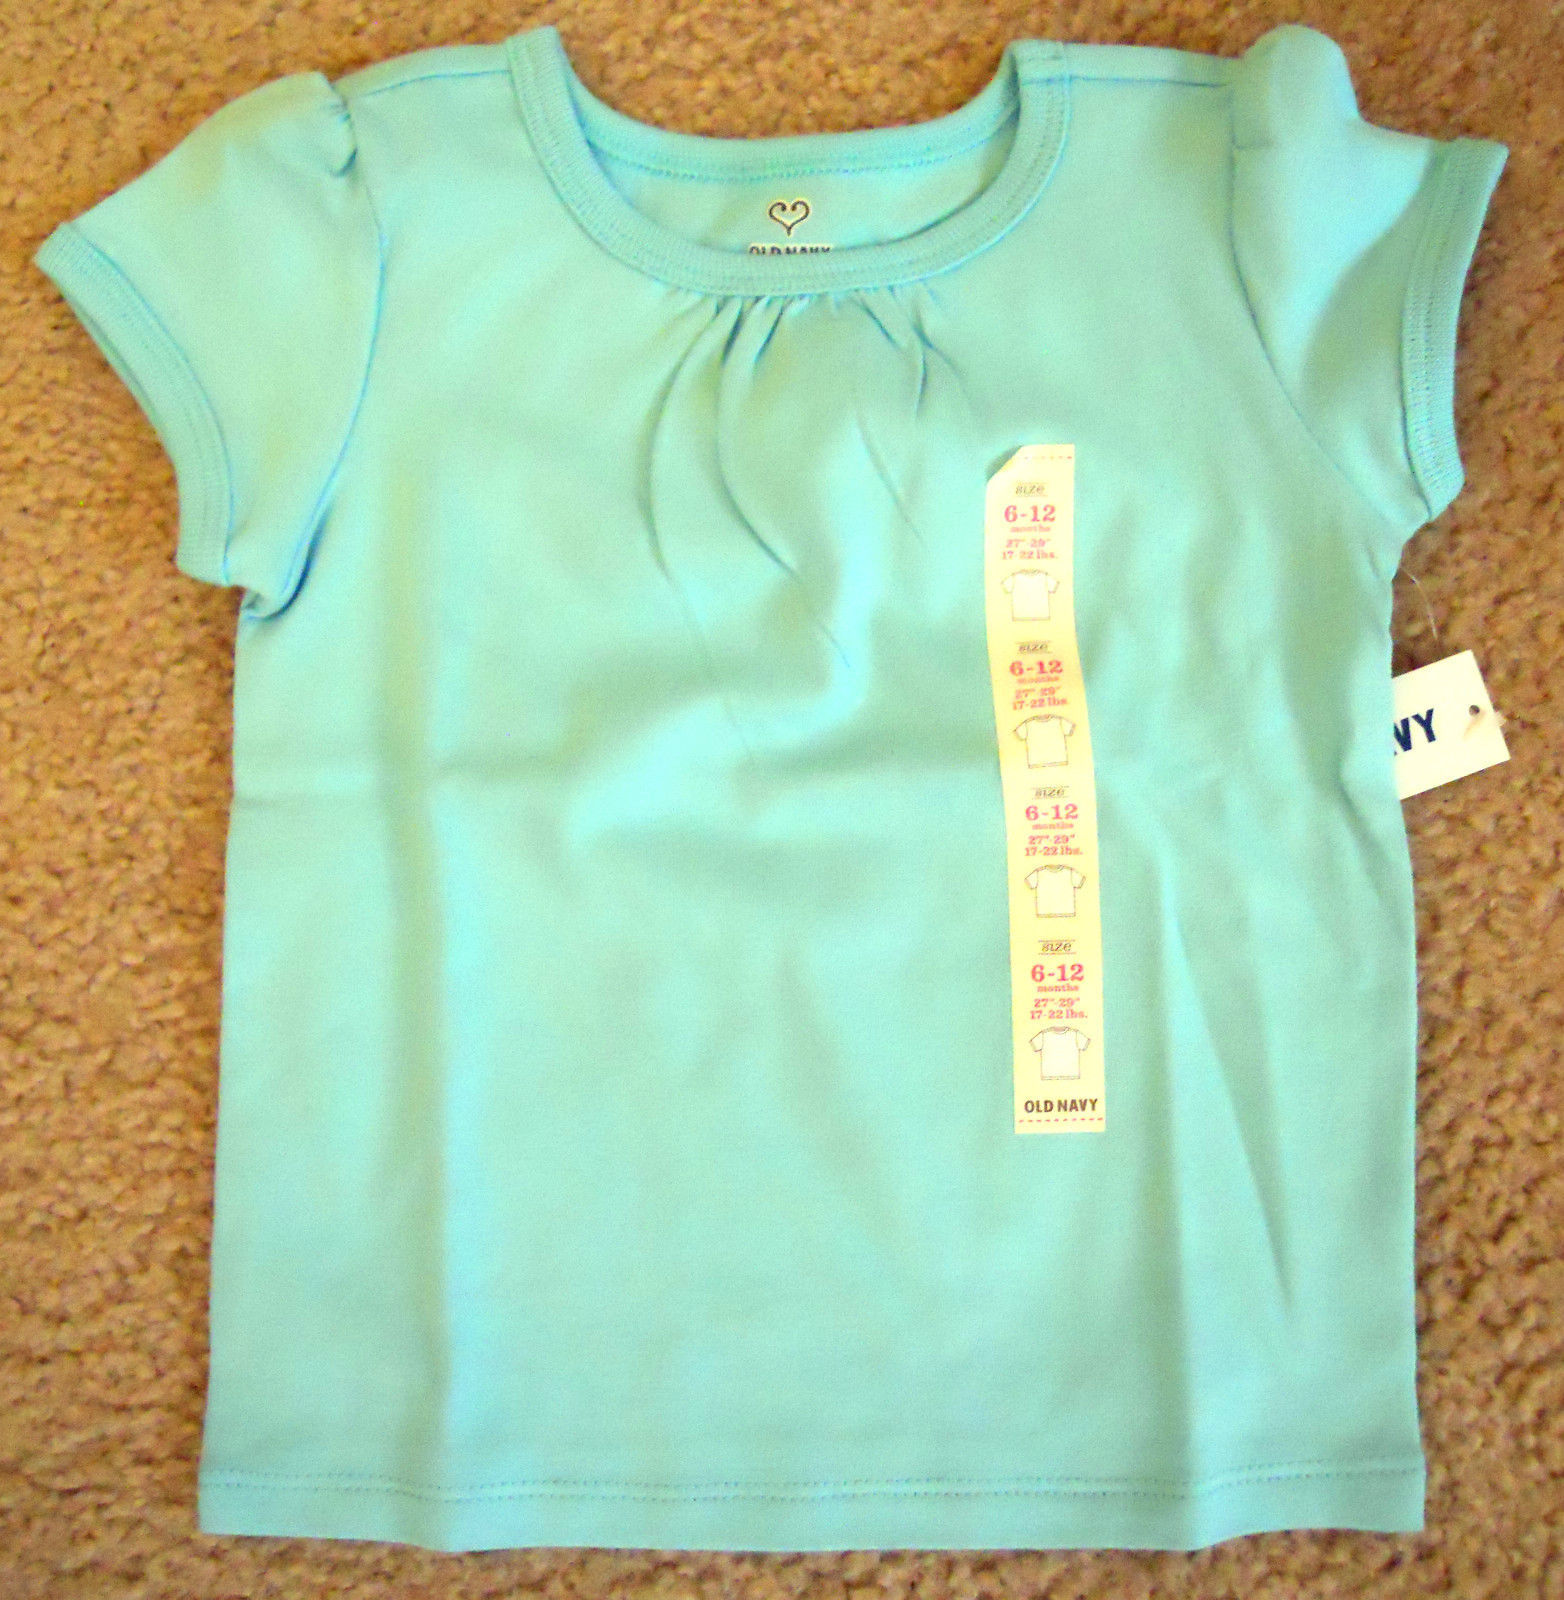 Clothing, Shoes & Accessories Tops & T-shirts Girls Old Navy Scary Cute Long Sleeve T-shirt Size 5 Nwt